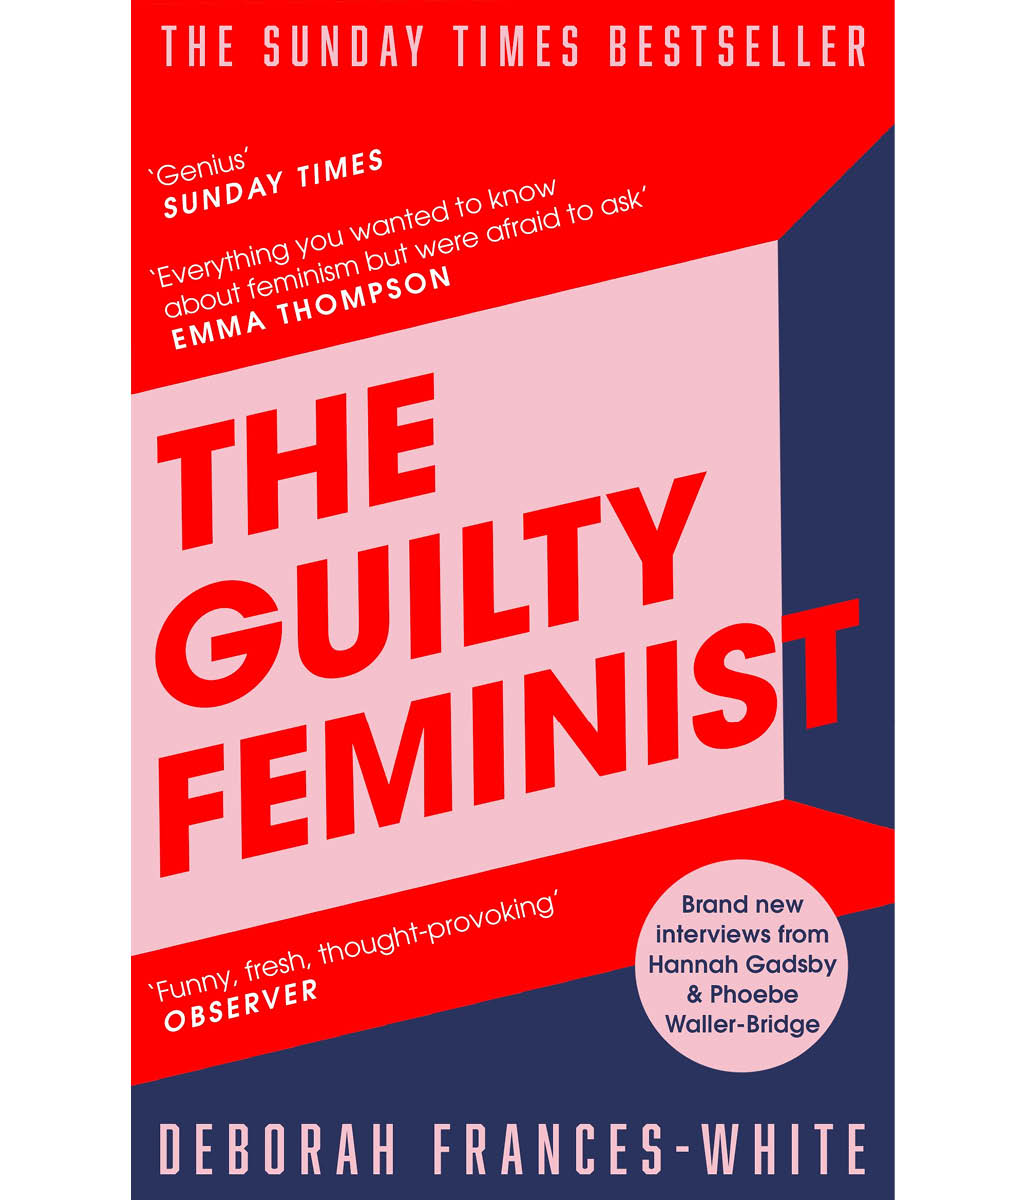 The Guilty Feminist by Deborah Frances-White